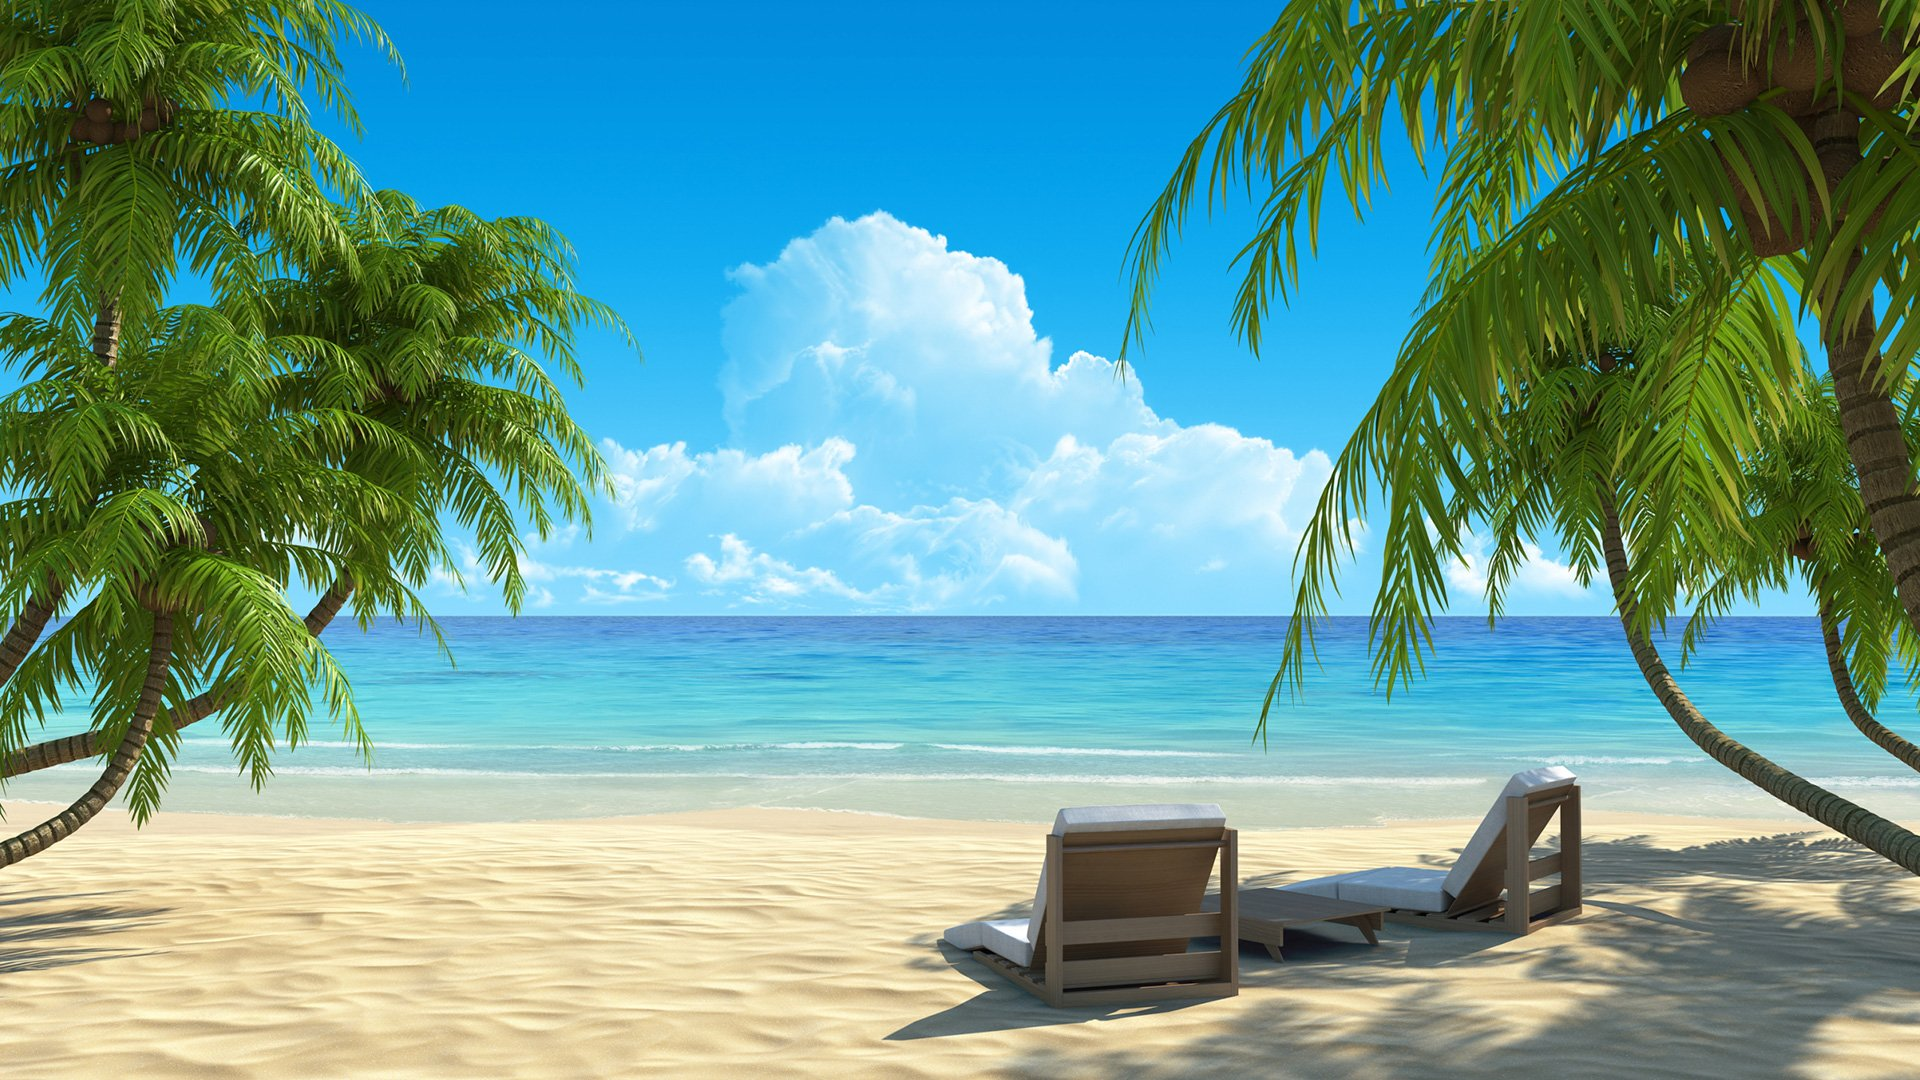 Beach Background Hd Desktop Wallpapers: HD Widescreen Beach Wallpaper